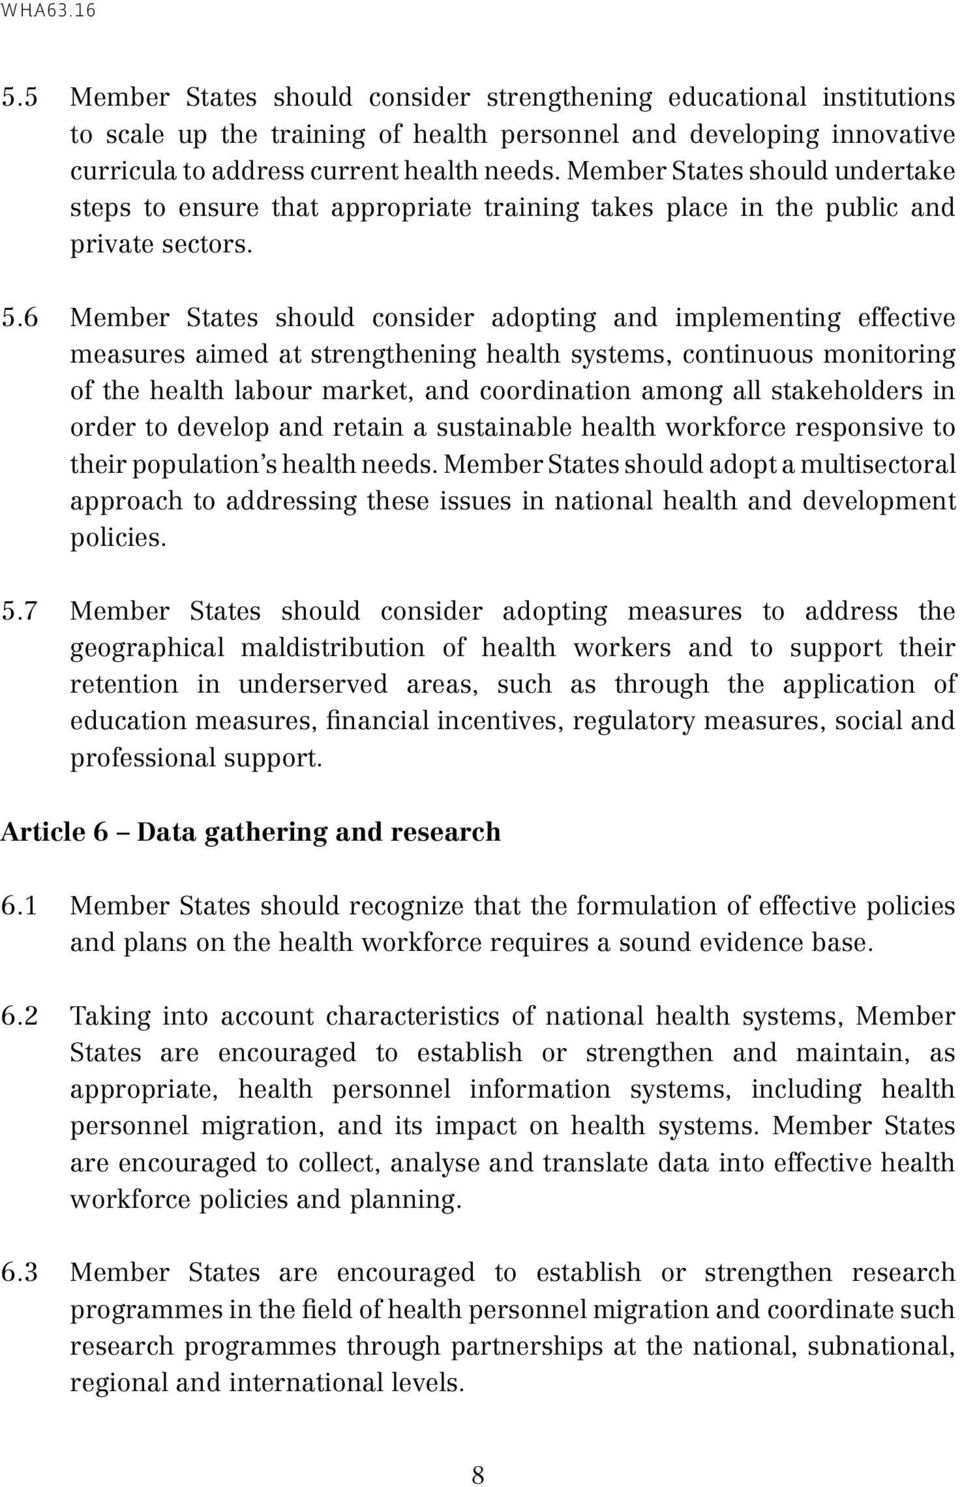 6 Member States should consider adopting and implementing effective measures aimed at strengthening health systems, continuous monitoring of the health labour market, and coordination among all